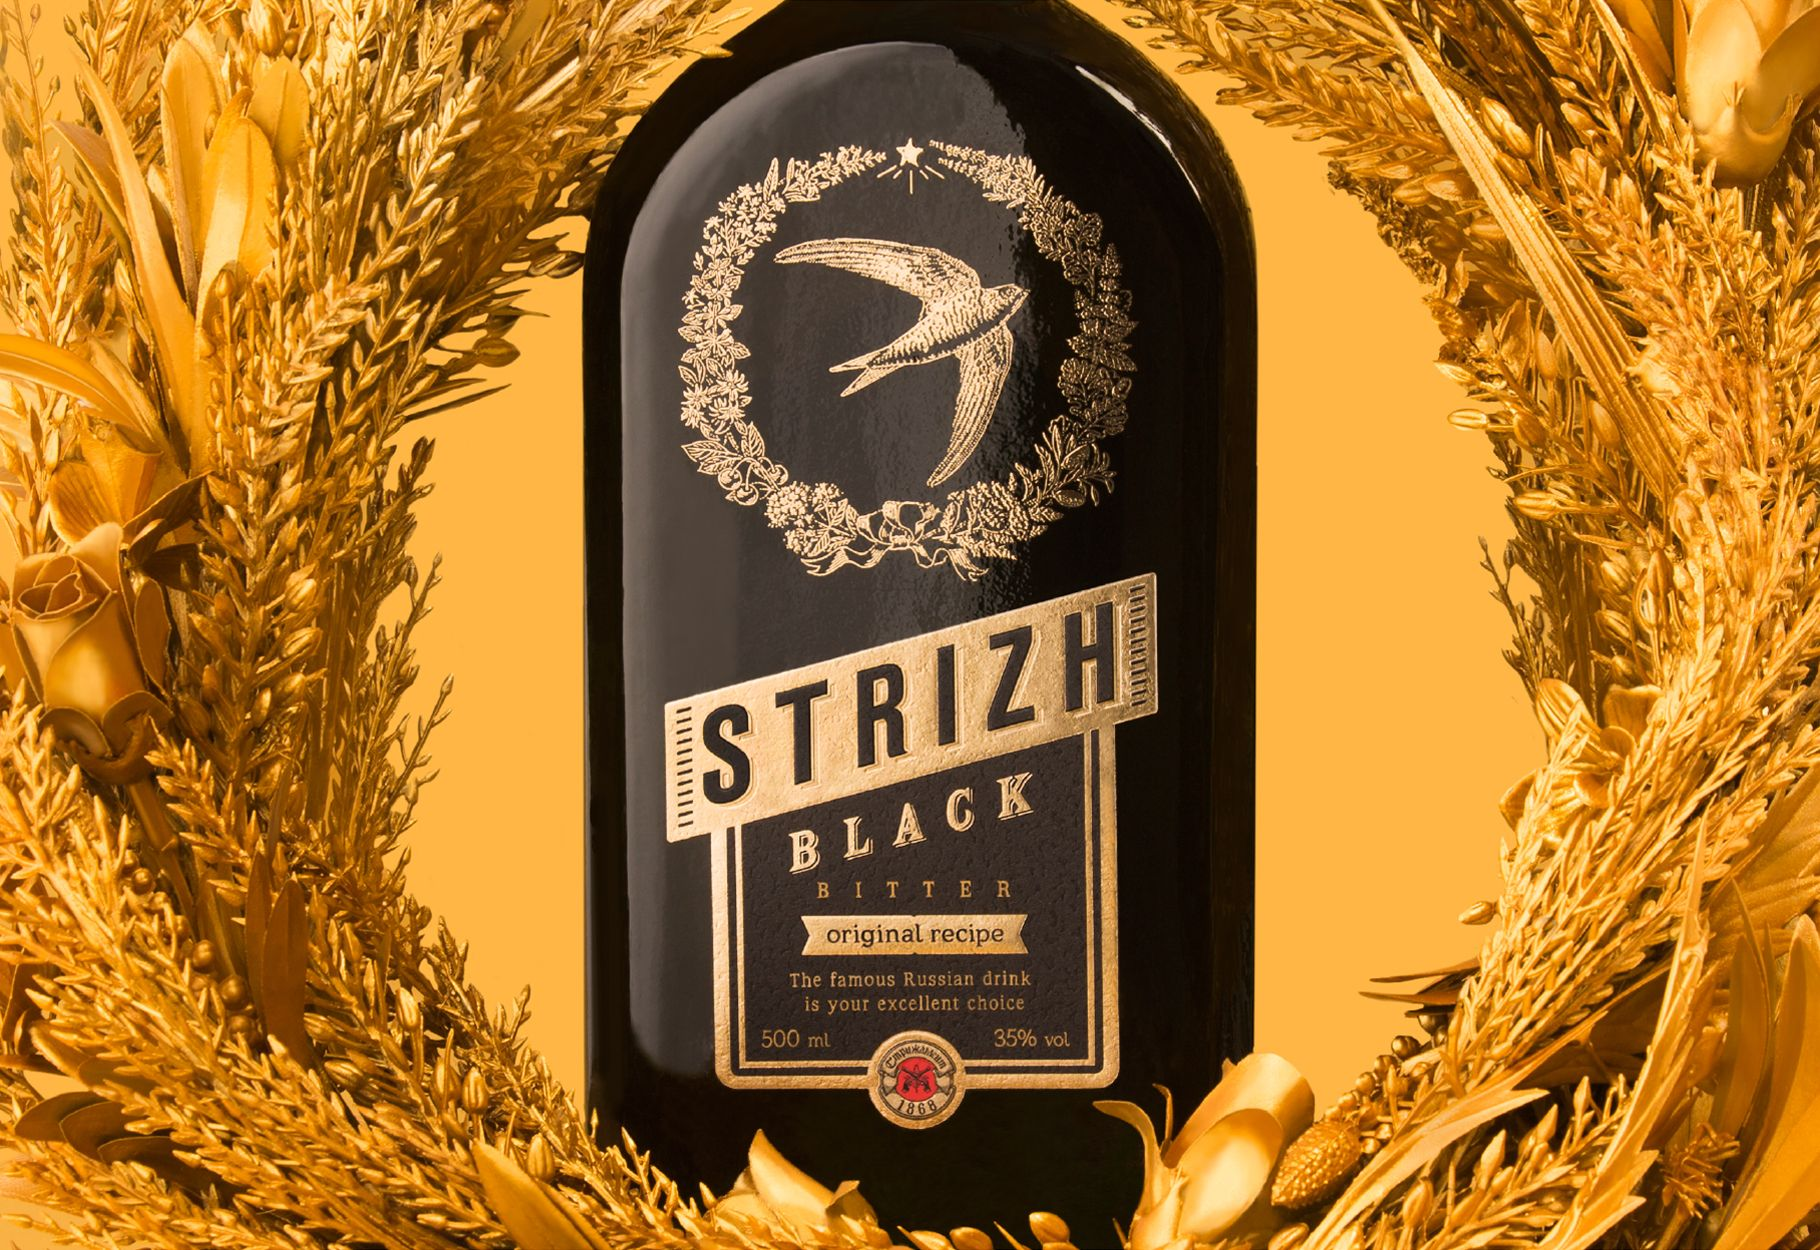 Strizh Black — The Dieline - Branding & Packaging Design